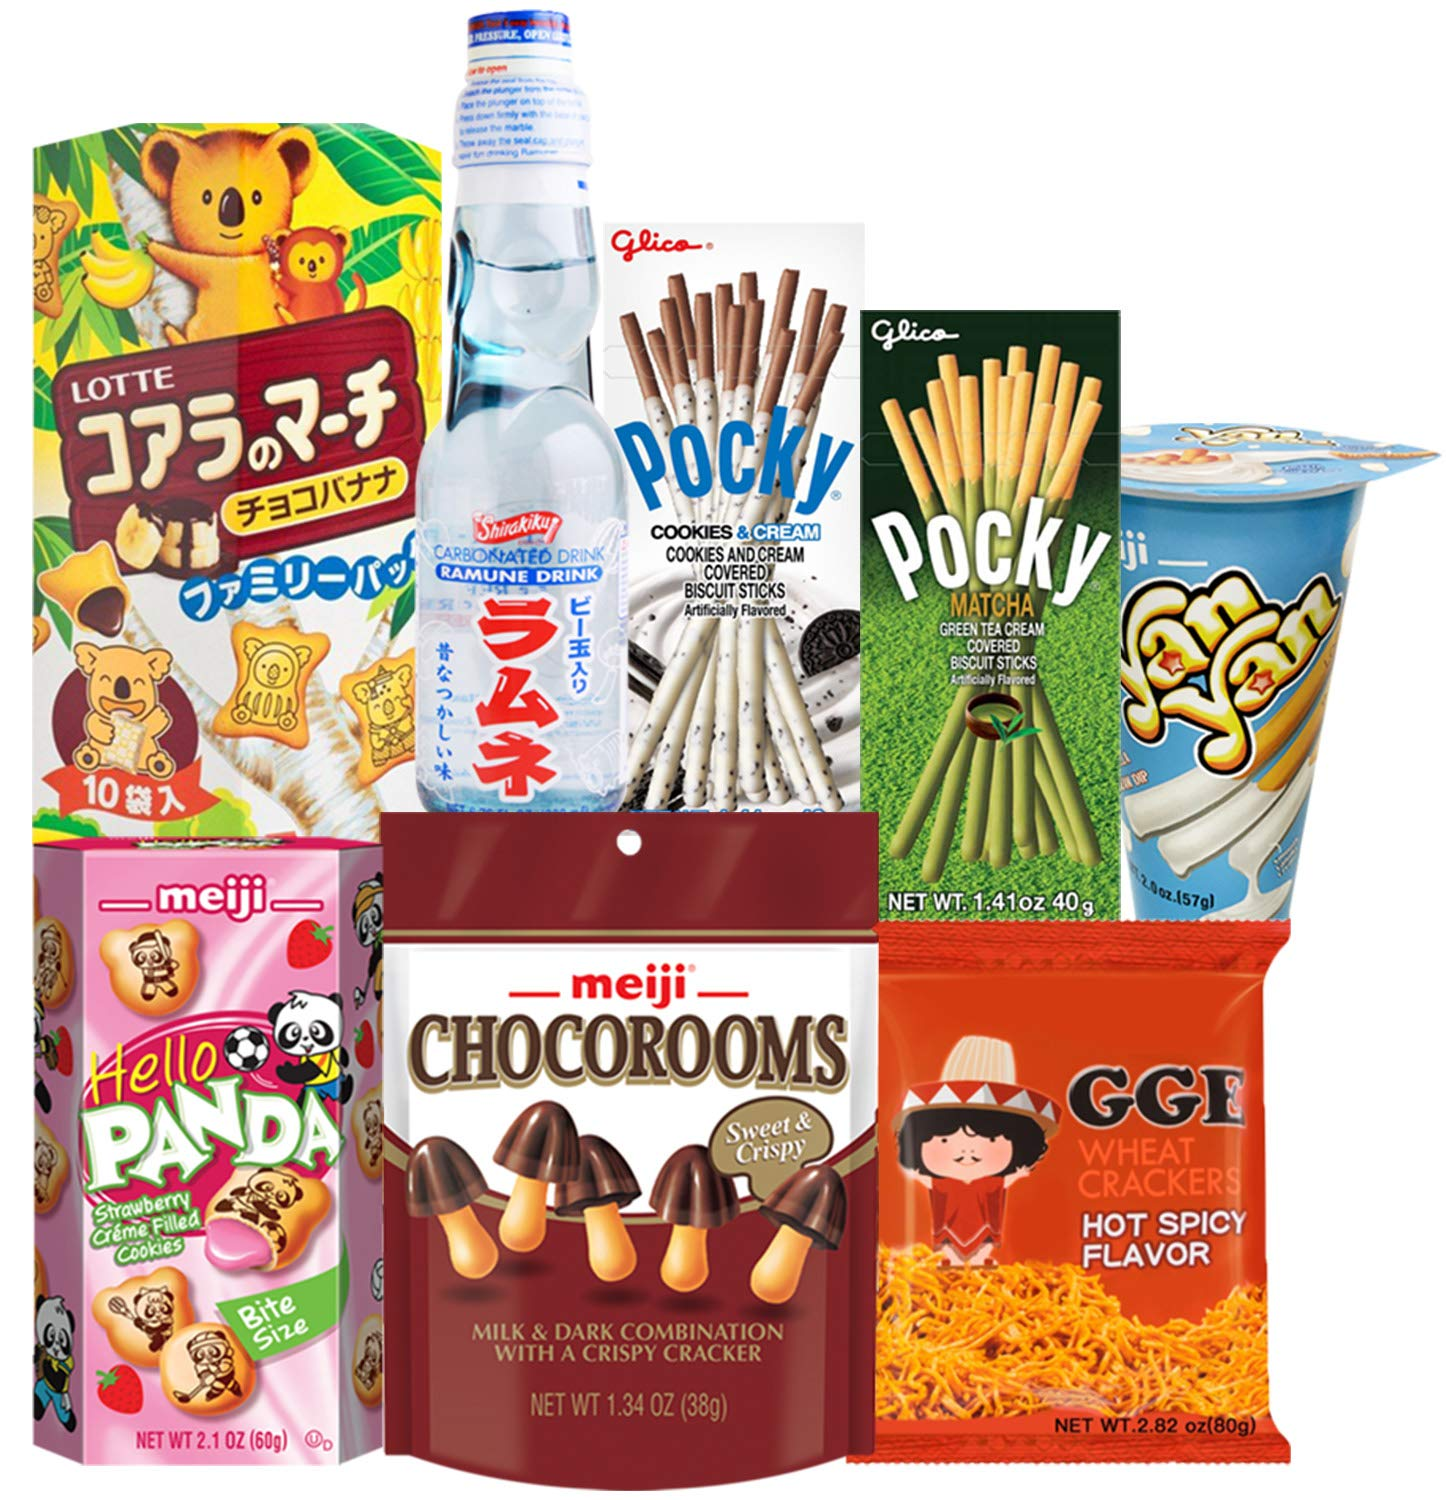 Japanese Snacks and Drink Care Package Snack Gift Box (8 Count) - Assortment of Pocky Sticks, Yan Yan, Hello Panda, Koala, GGE, Candy, Ramune Soda - Variety Pack Flavors